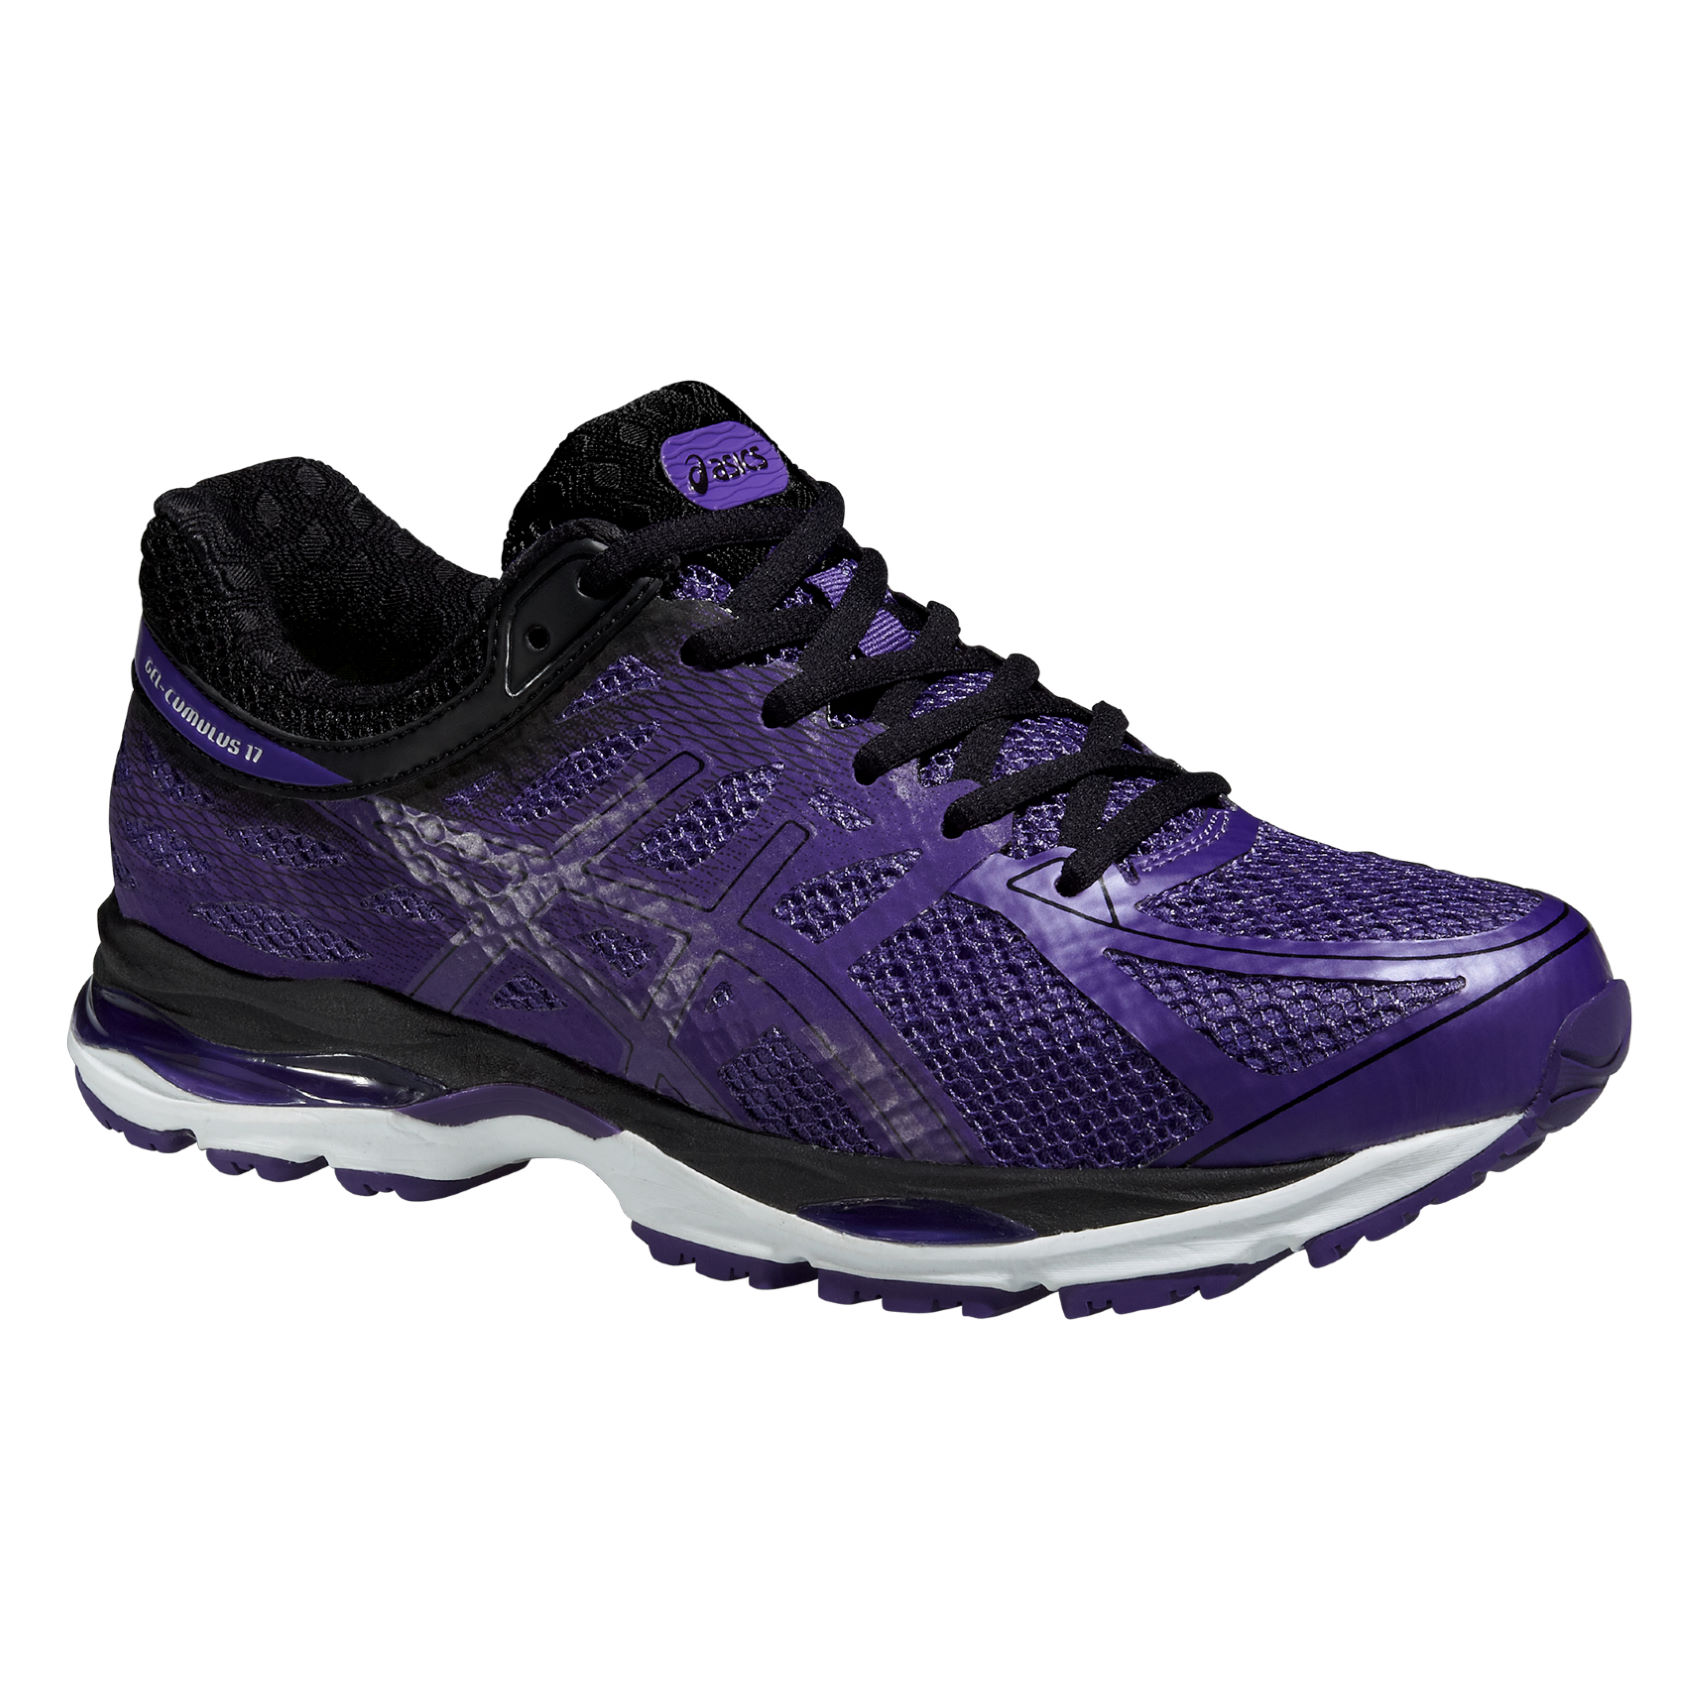 wiggle asics women 39 s gel cumulus 17 lite show shoes aw15 cushion running shoes. Black Bedroom Furniture Sets. Home Design Ideas